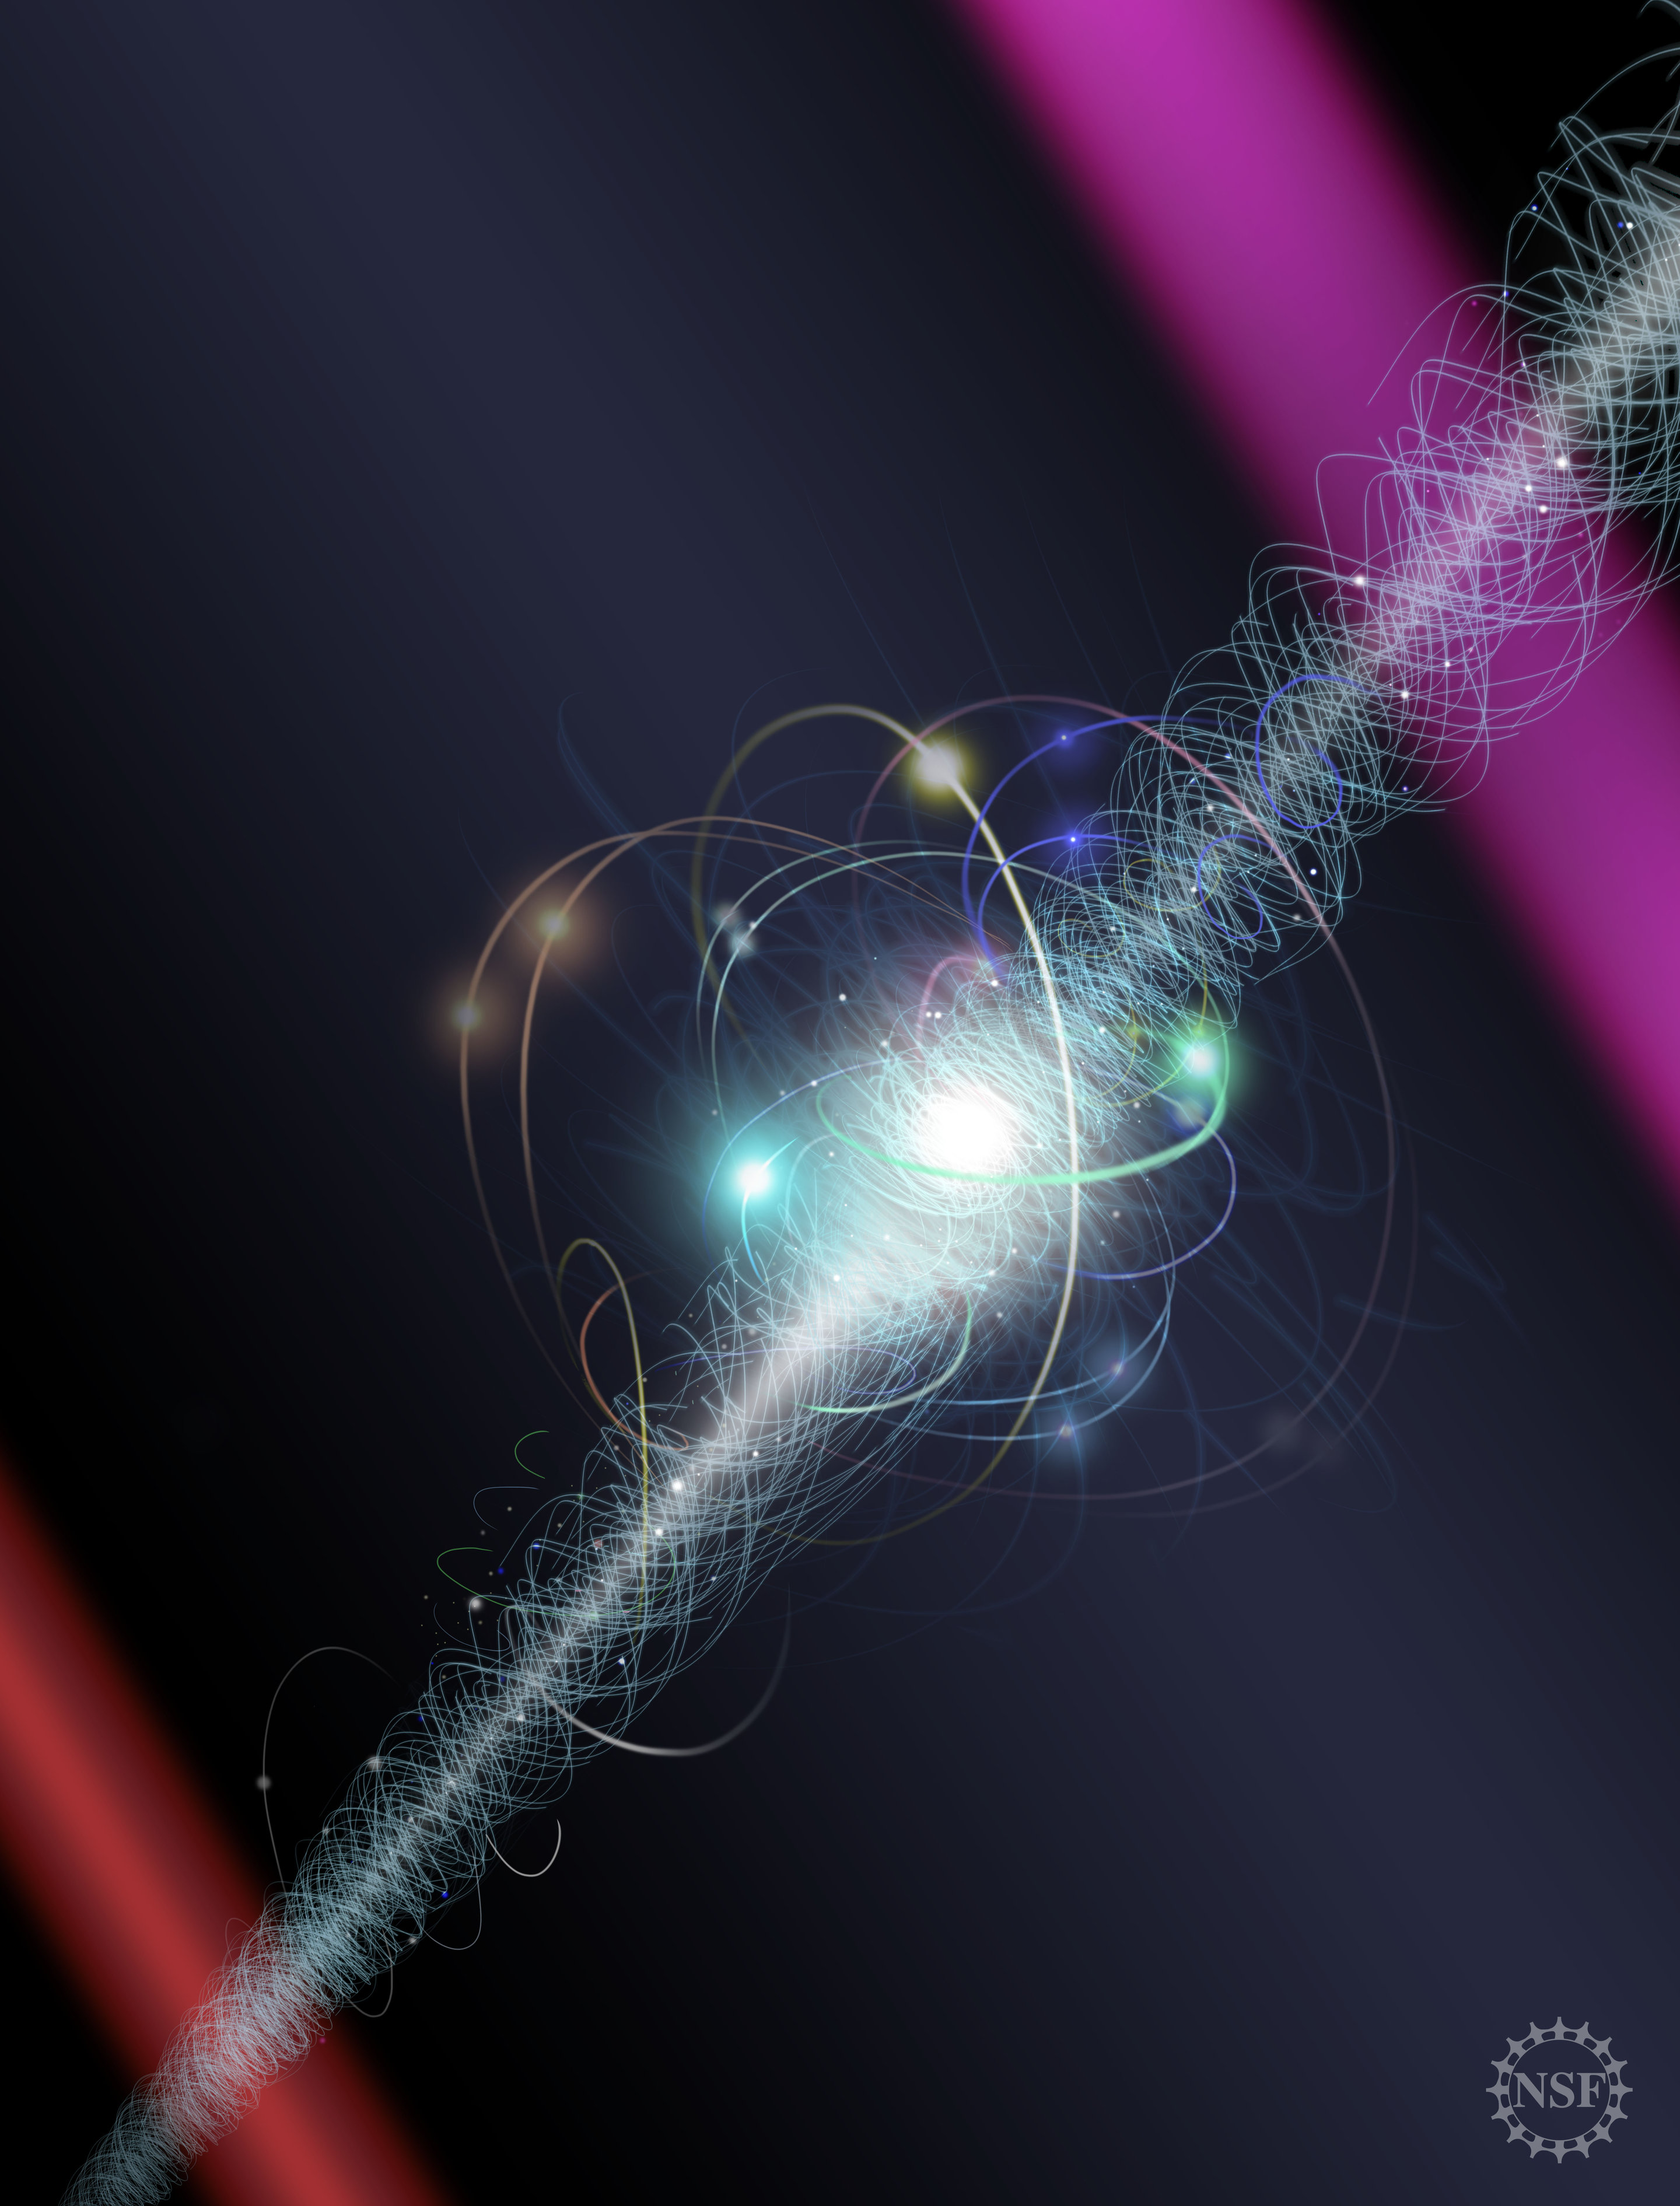 Study supports Standard Model of particle physics, excludes alternative models